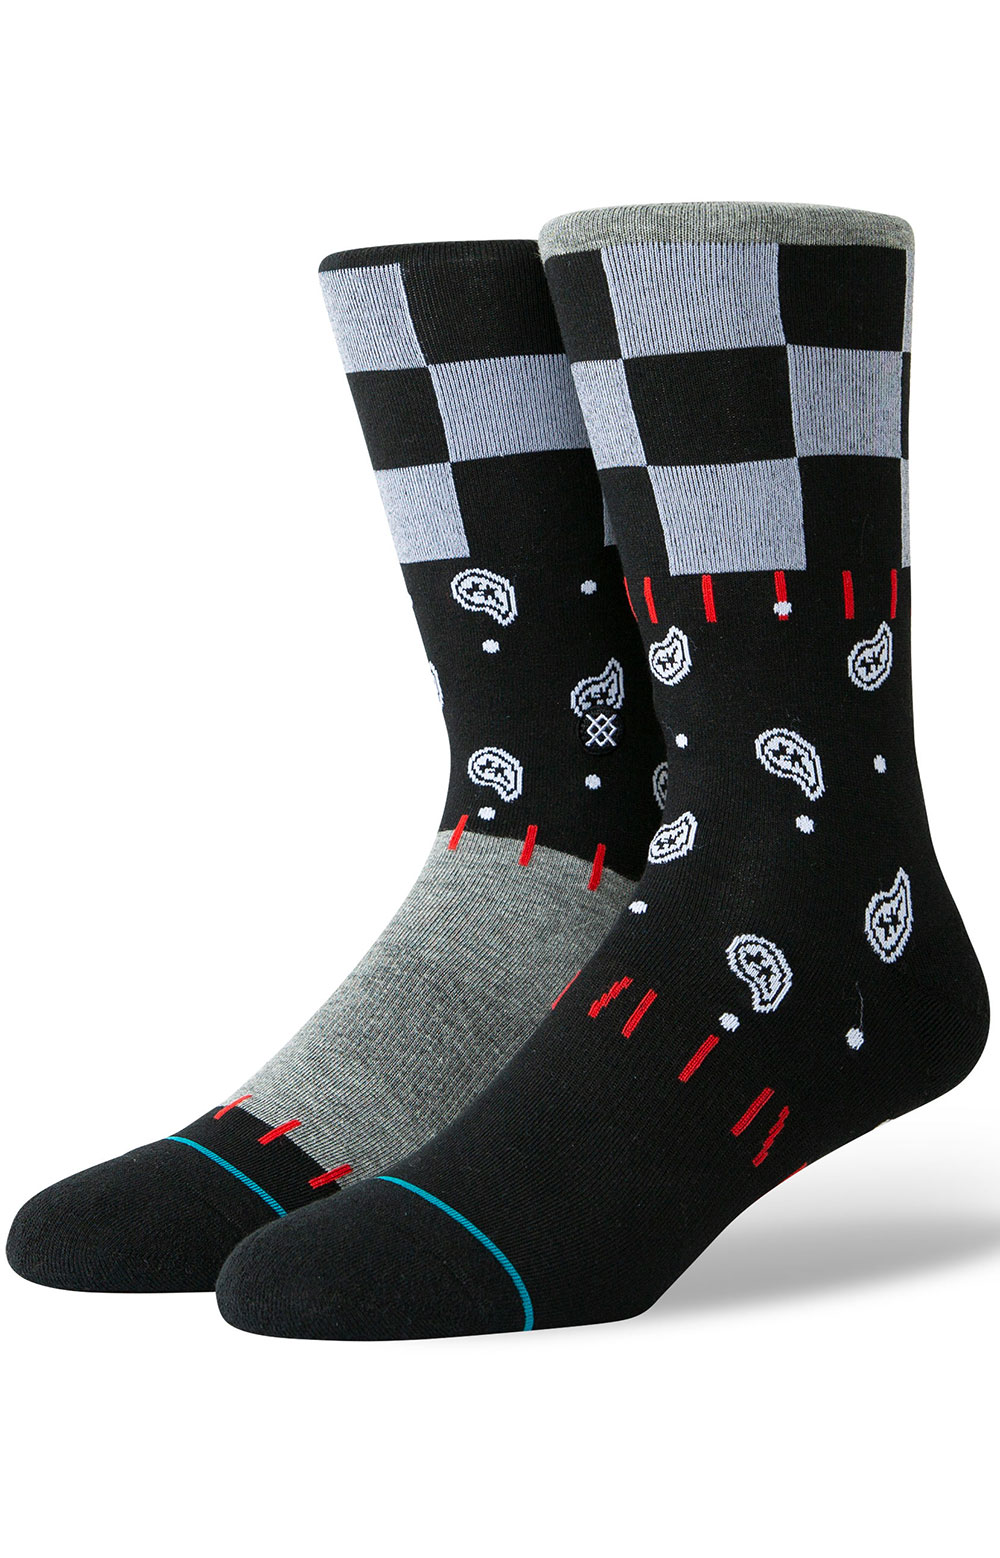 Discontent Socks - Black